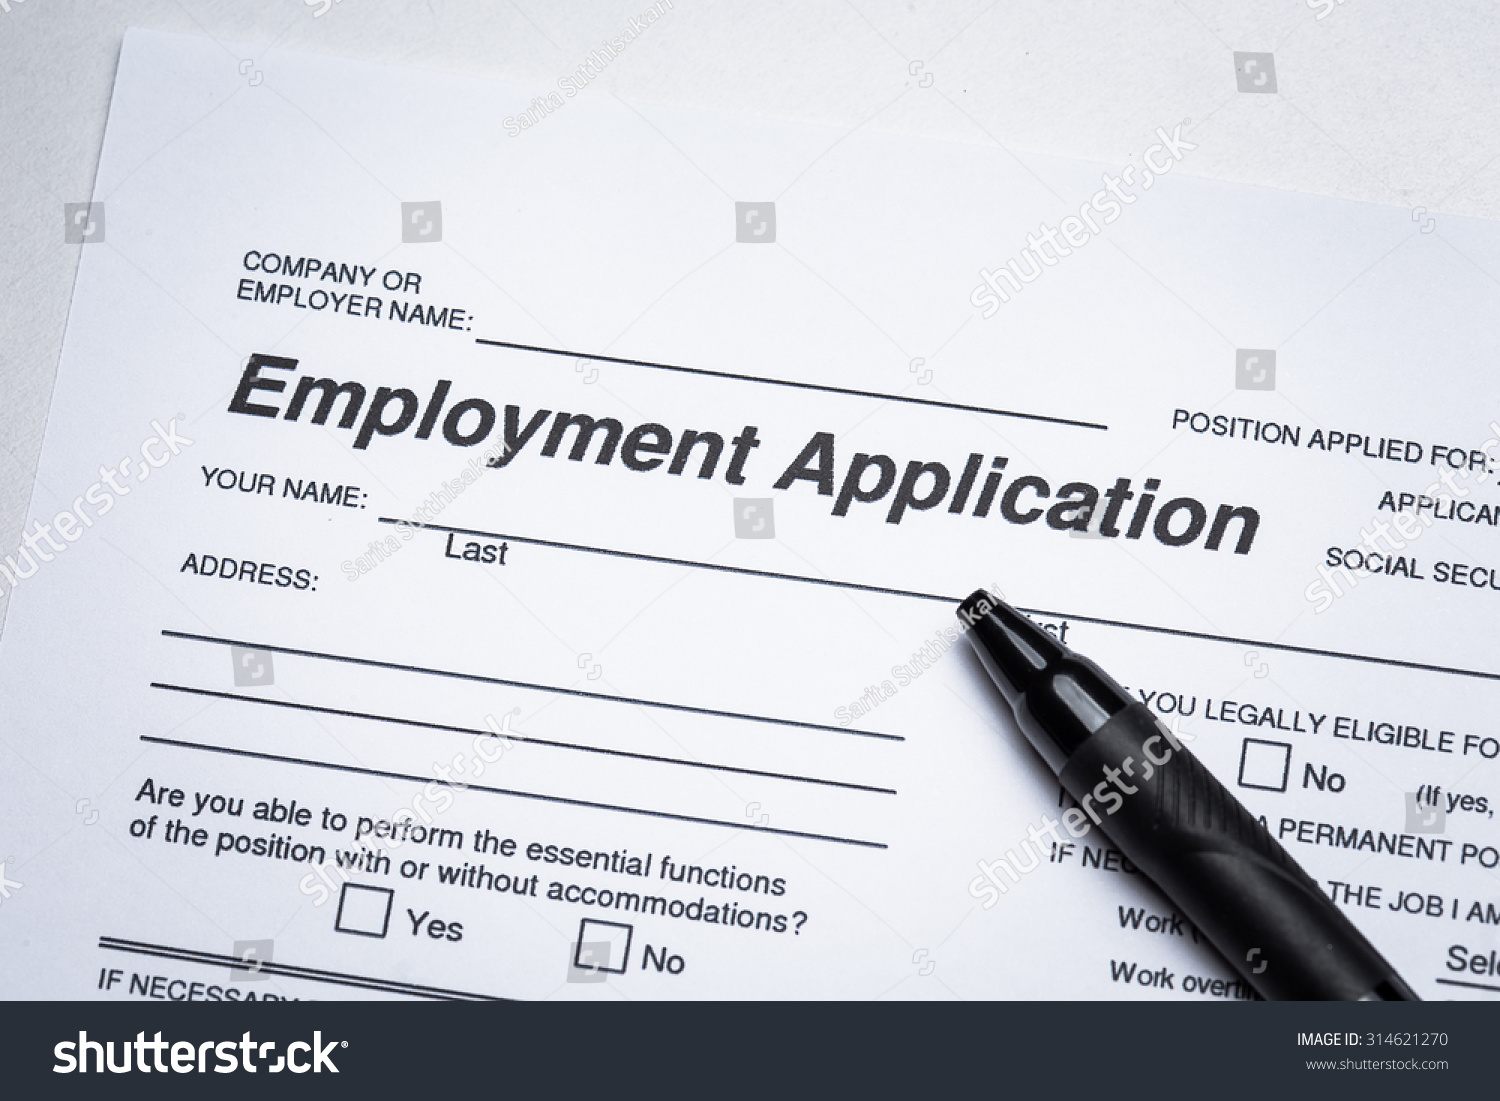 Completing an job application form with focus on heading | EZ Canvas